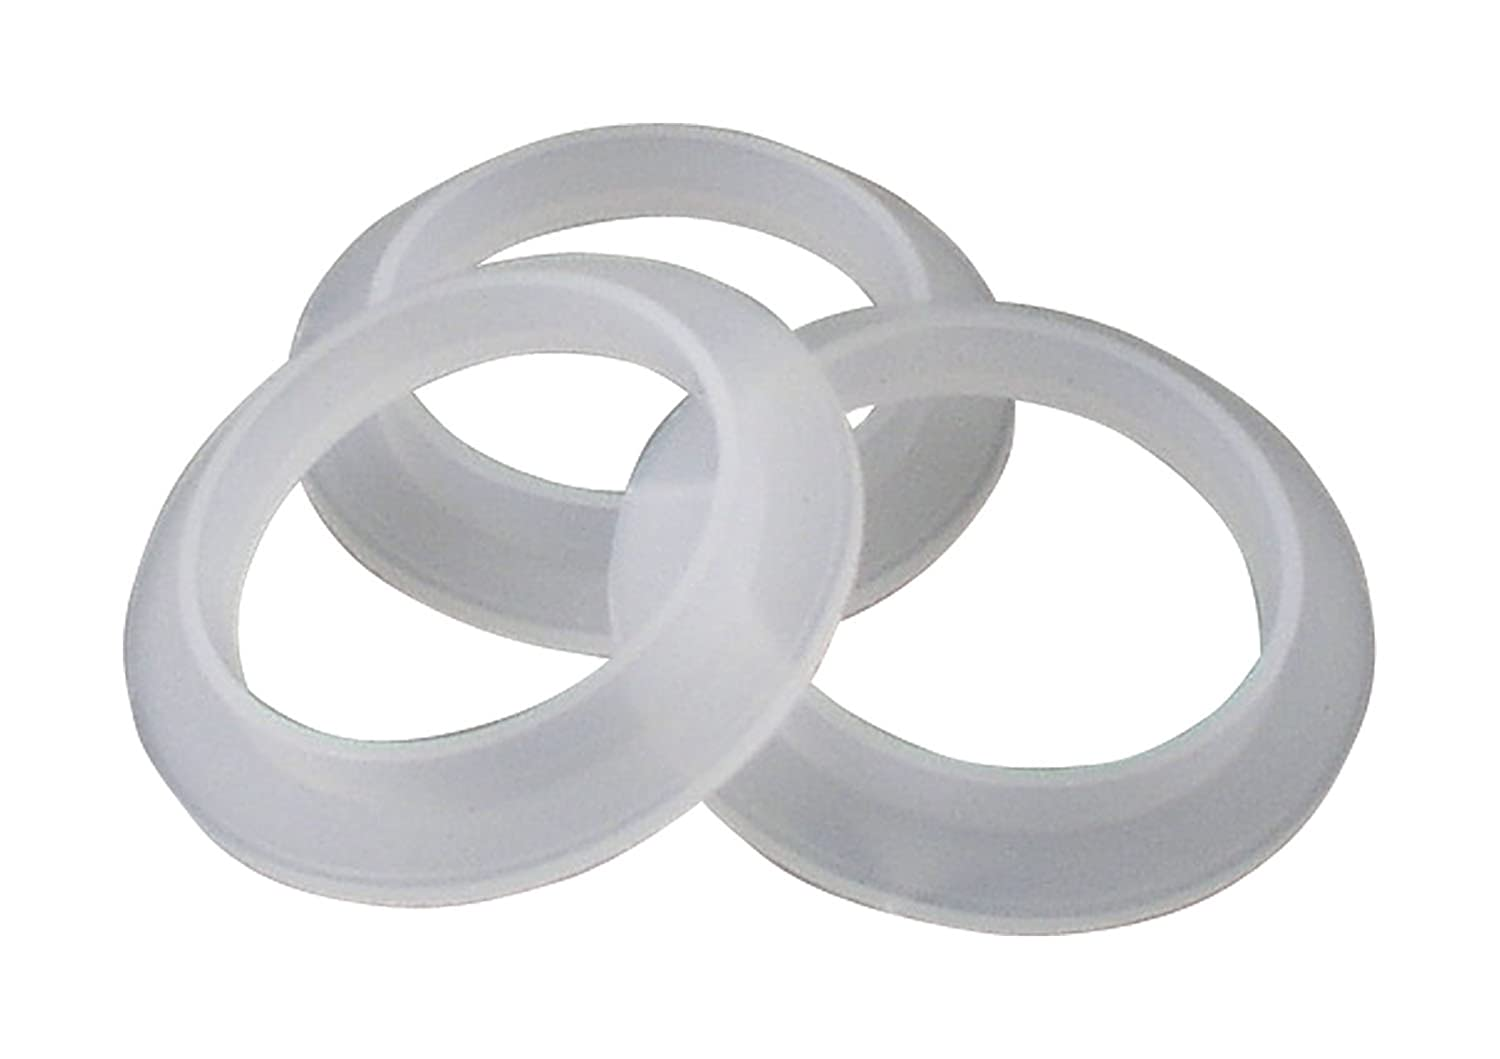 LDR 506 6506 1-1/2-Inch Polyethylene Flanged Tailpiece Washers ...